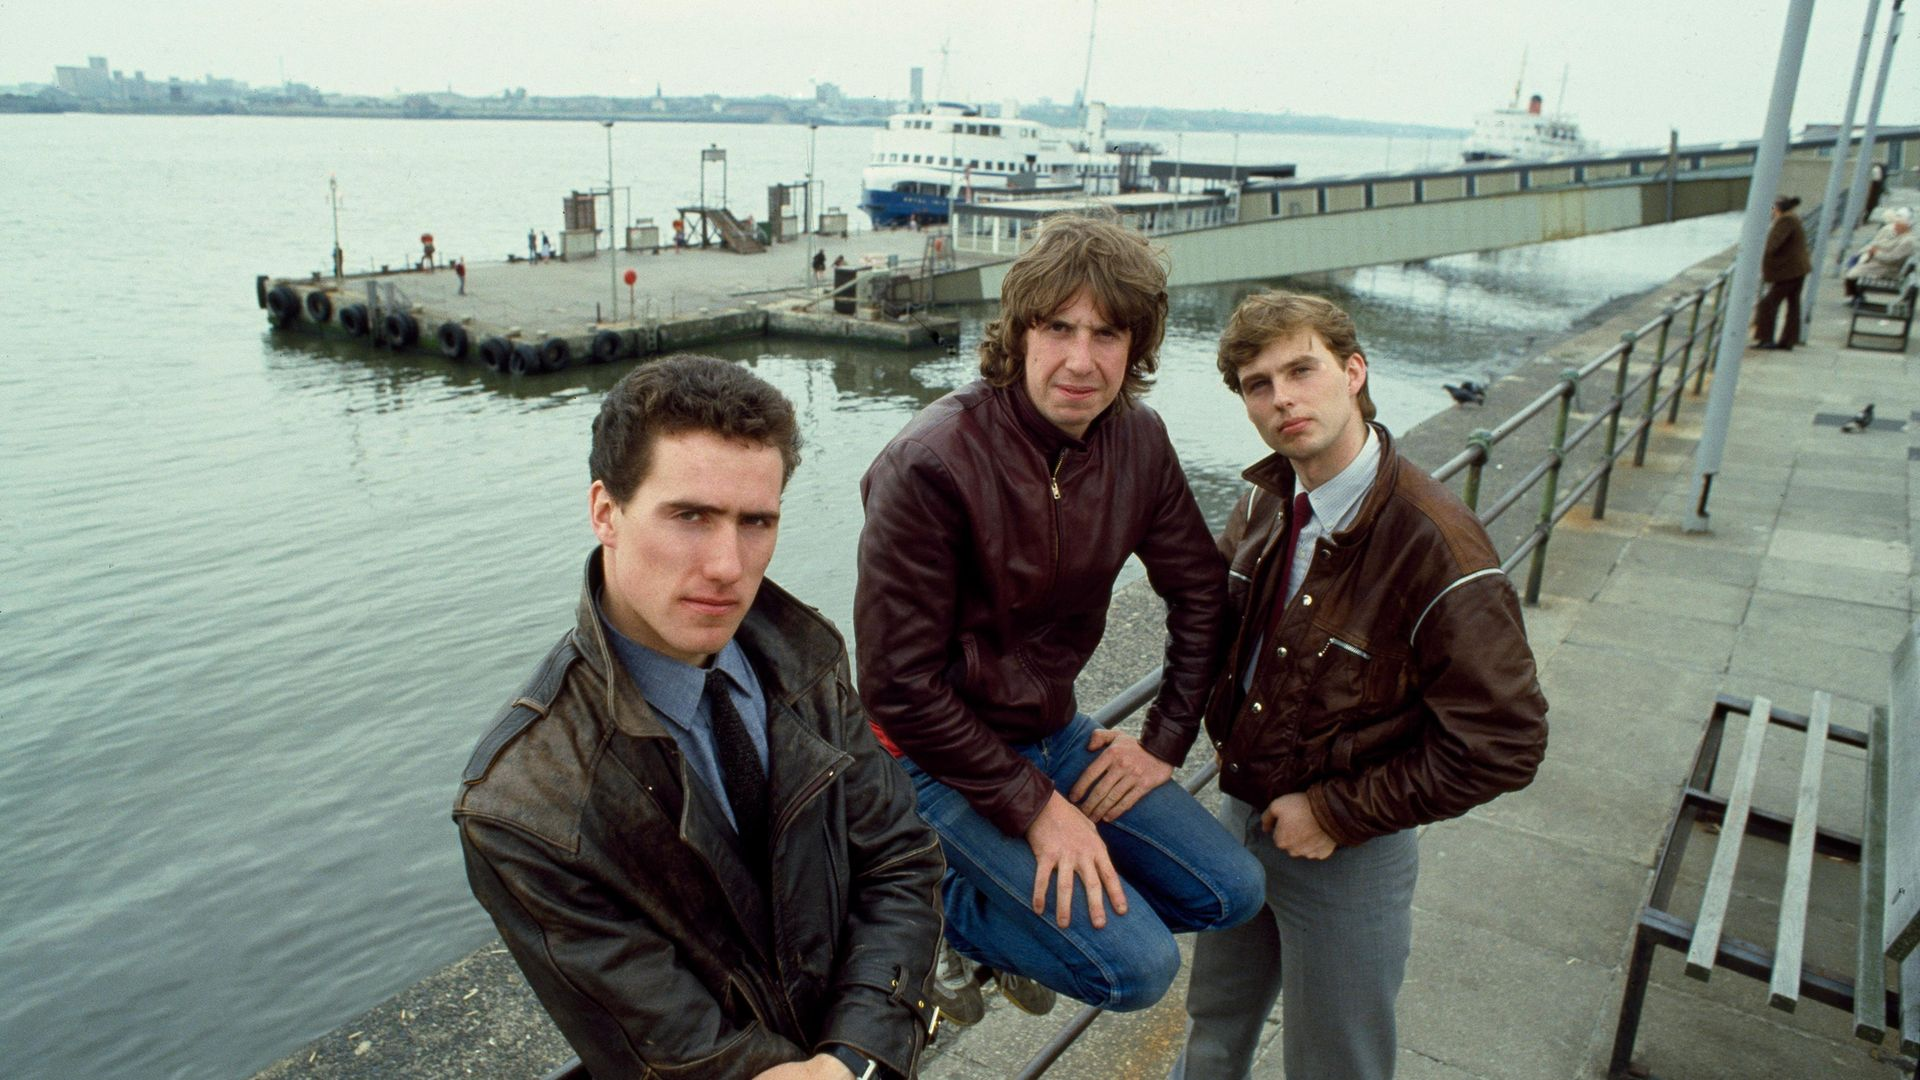 From left, Andy McCluskey, Malcolm Holmes and Paul Humphreys of Orchestral Manoeuvres in the Dark on Liverpool's waterfront in 1982 - Credit: Getty Images